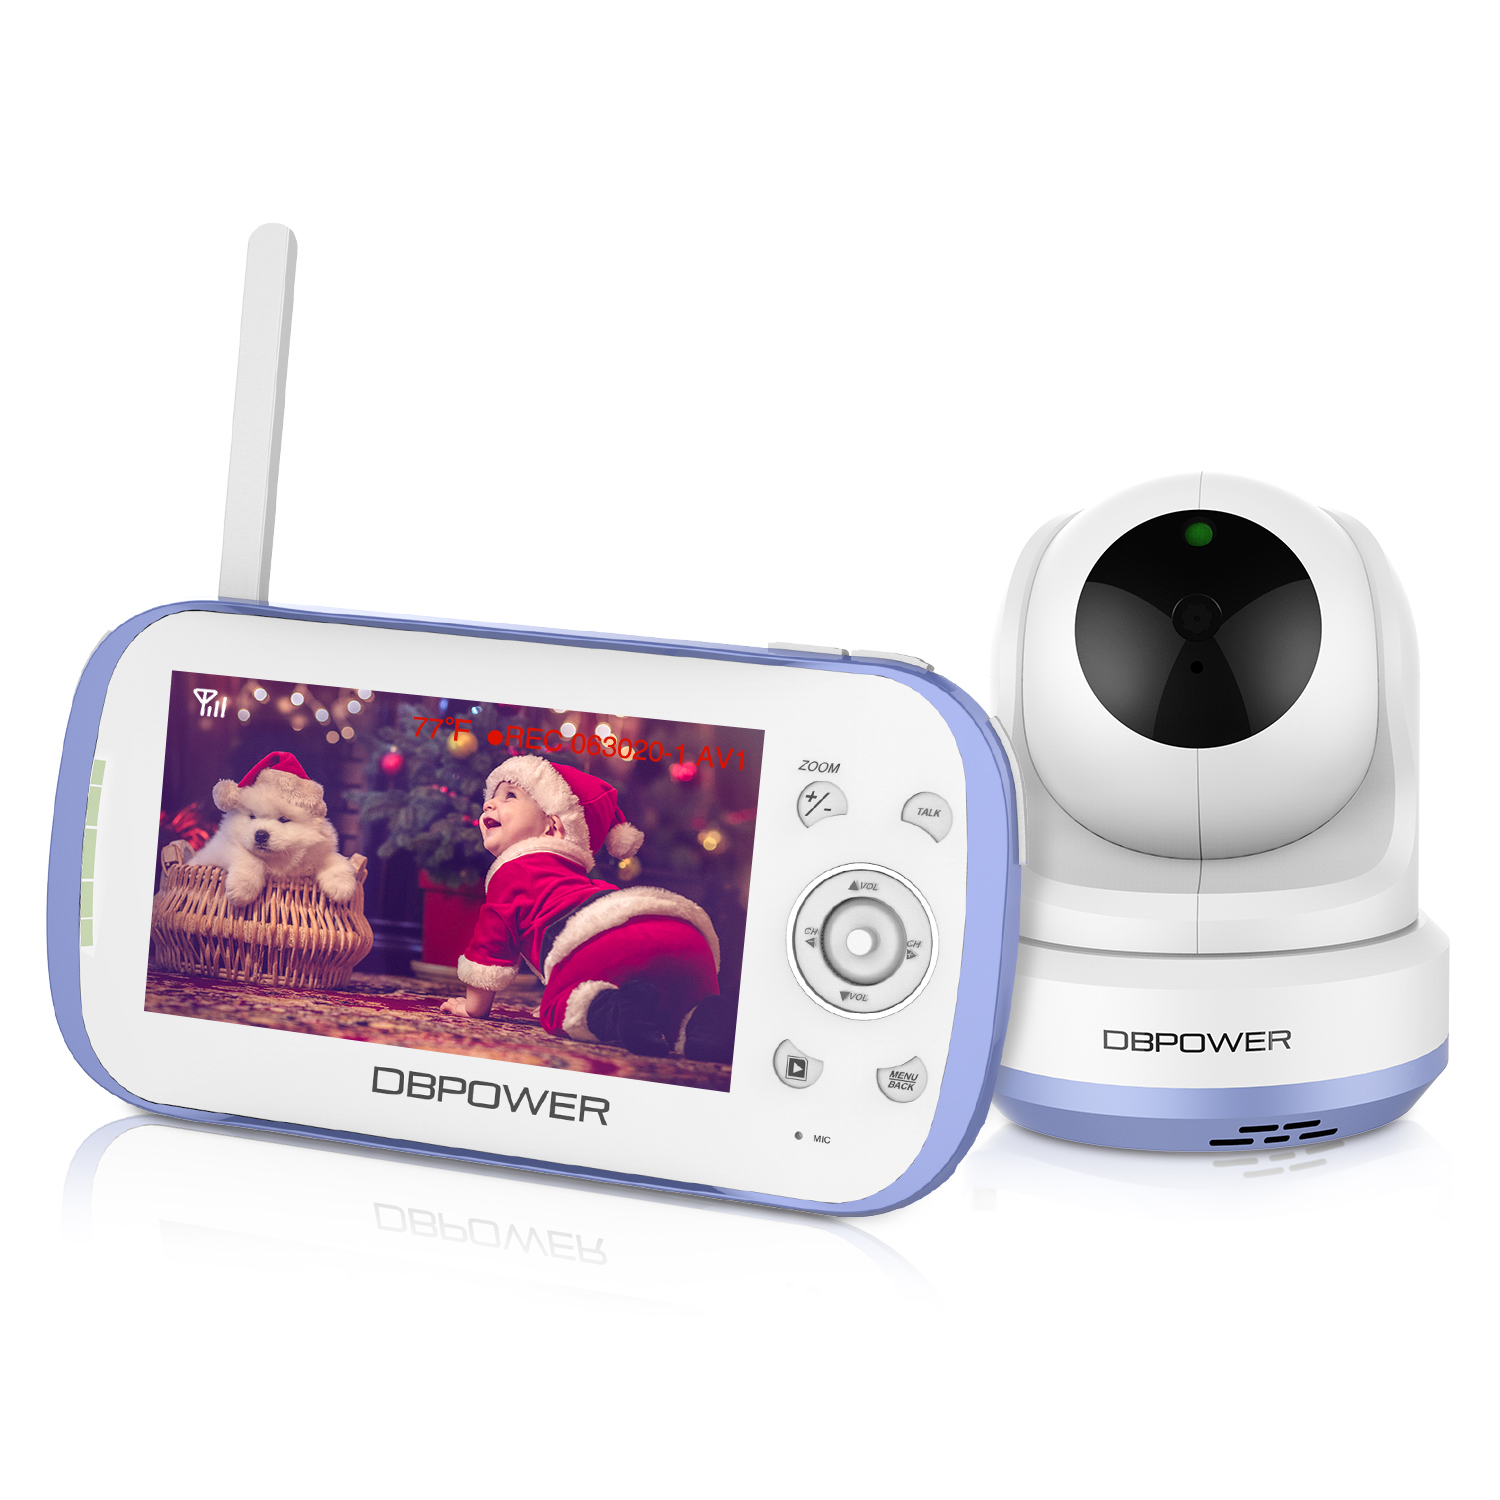 Dbpower Video Baby Monitor 270 Degree Pan Tilt Zoom 4 3